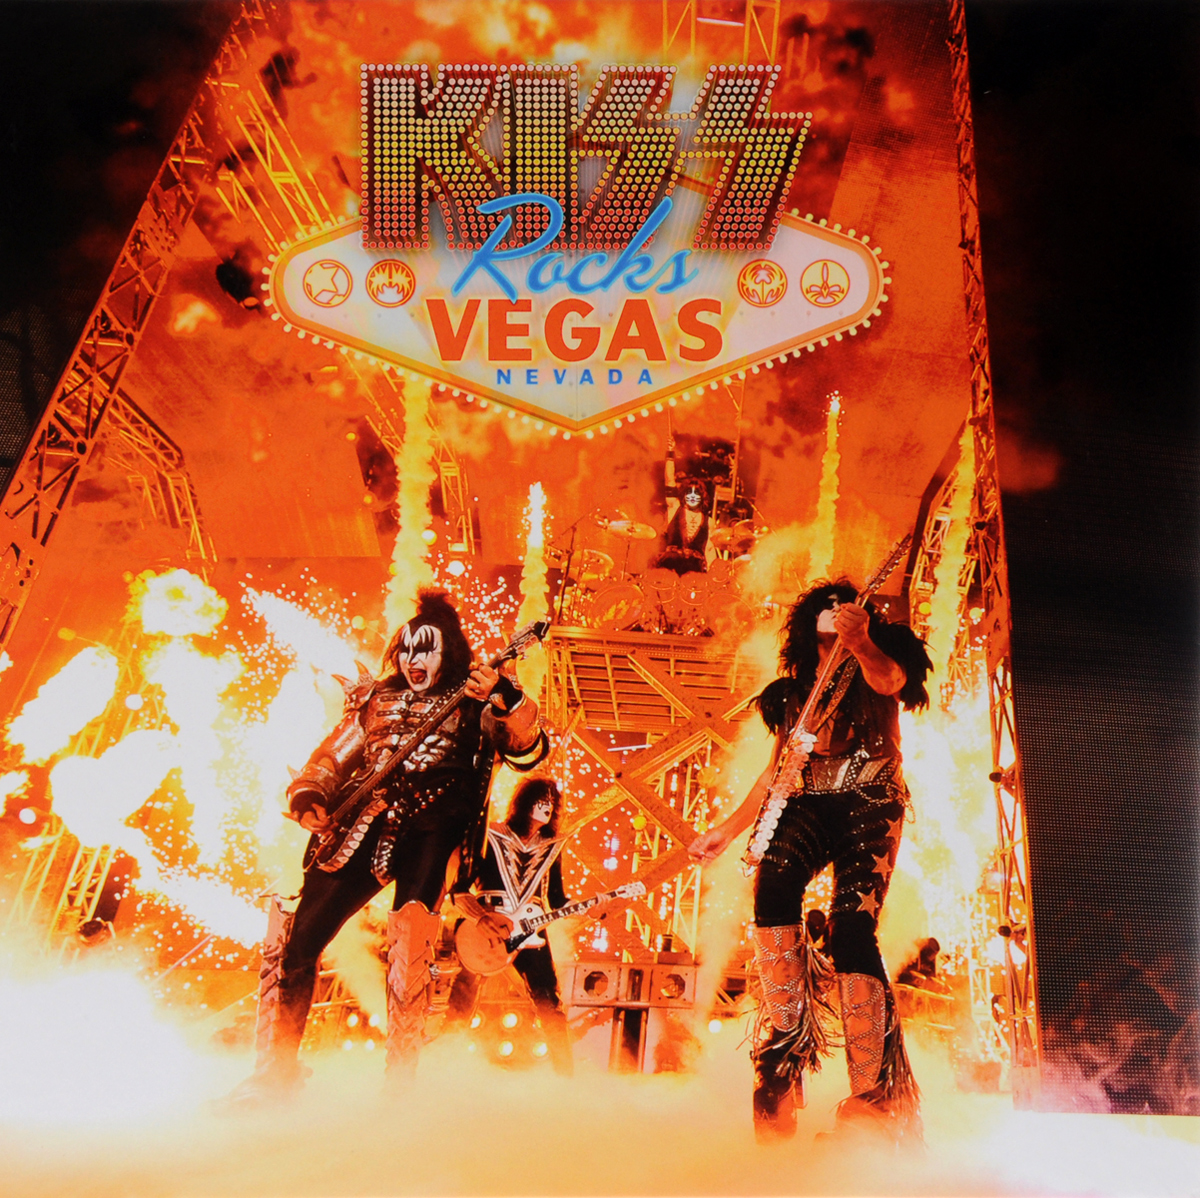 Kiss Kiss. Rocks Vegas (2 CD + DVD + Blu-Ray) avid dolby surround tools